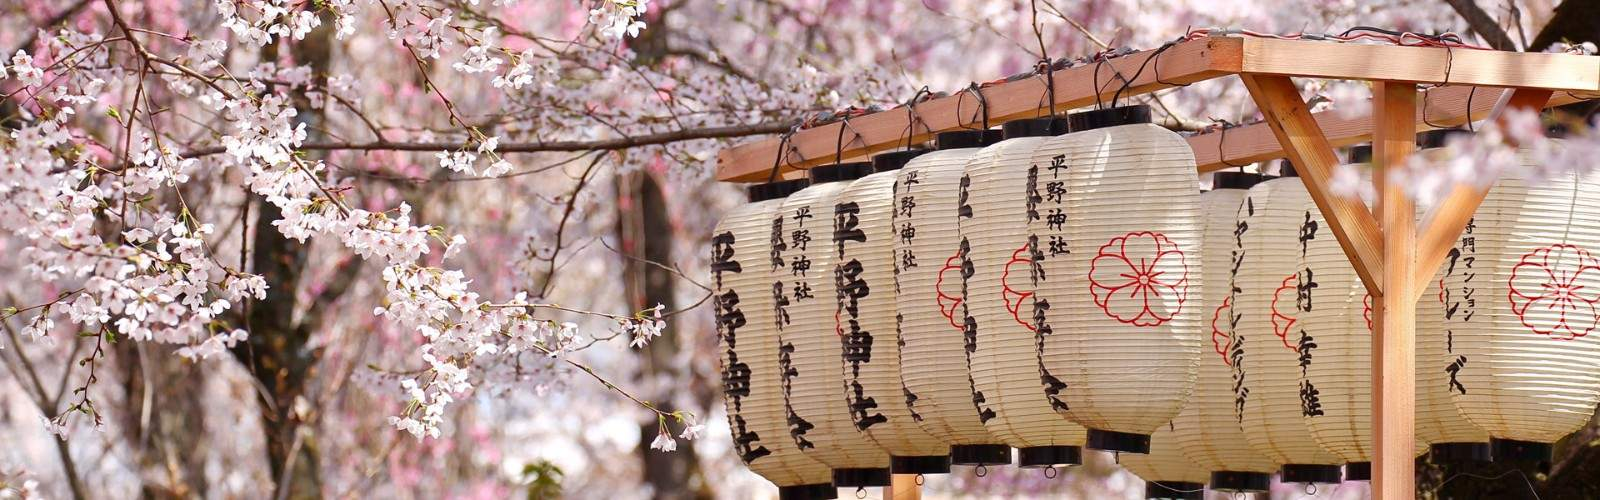 Times News Cherry Blossom Tour 2020 Tour | Wendy Wu Tours